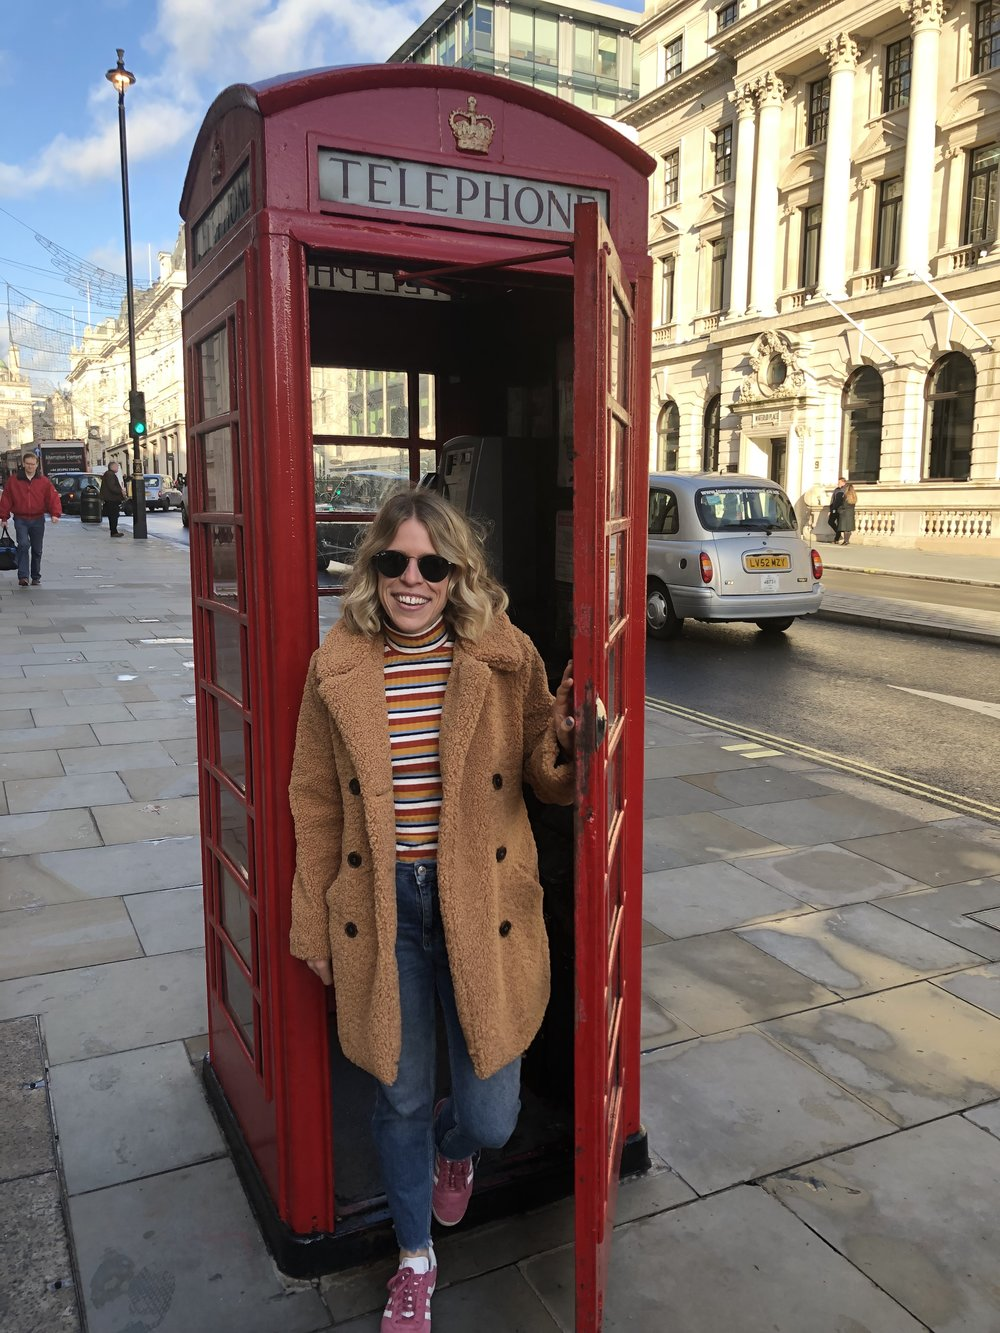 My traditional tourist shot in a telephone box